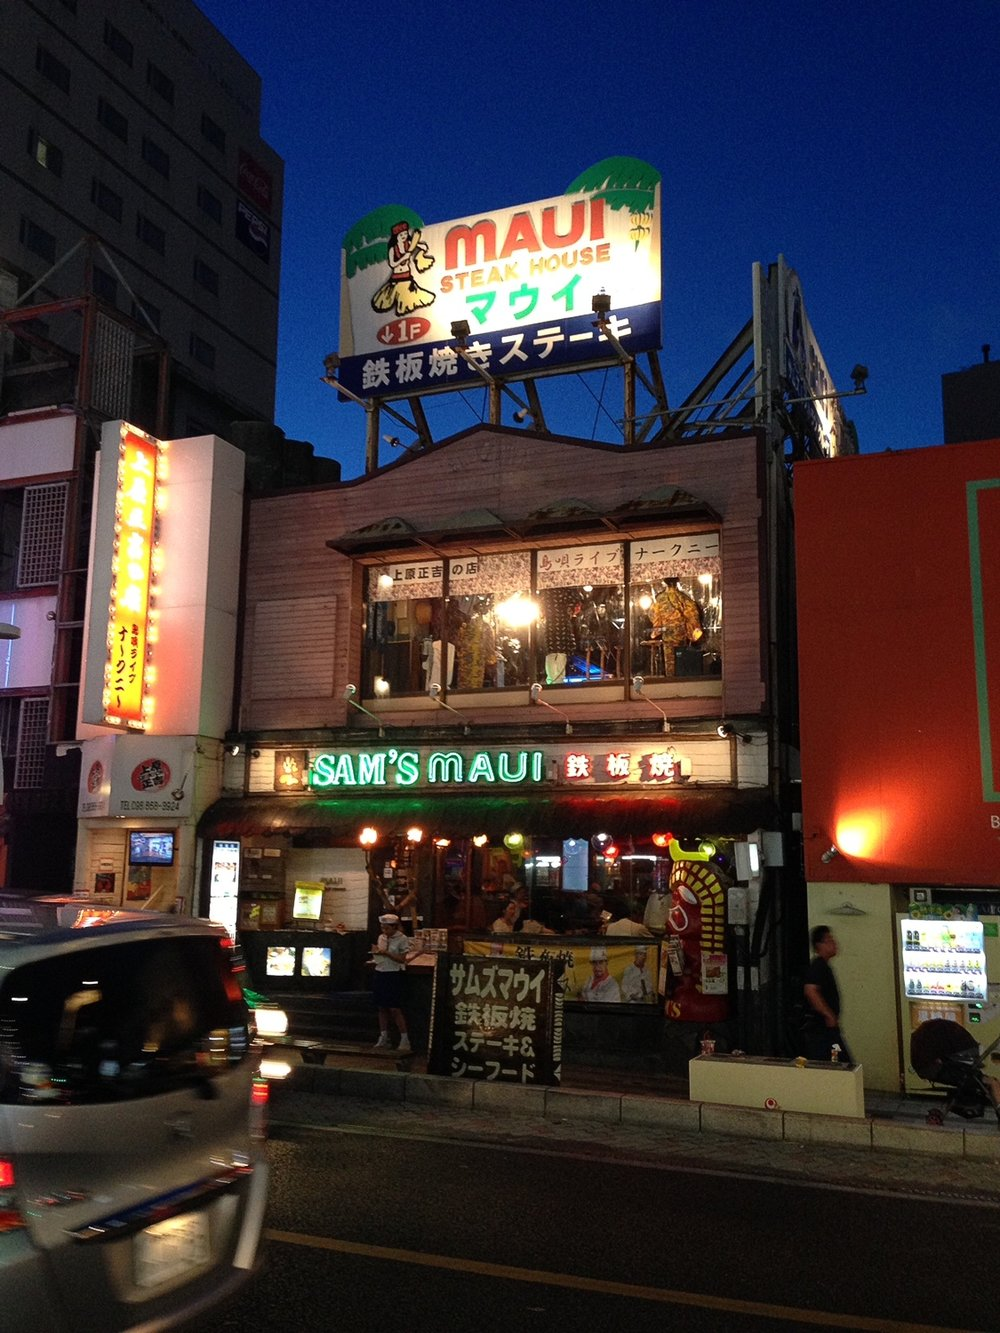 Sam's Maui Steak House